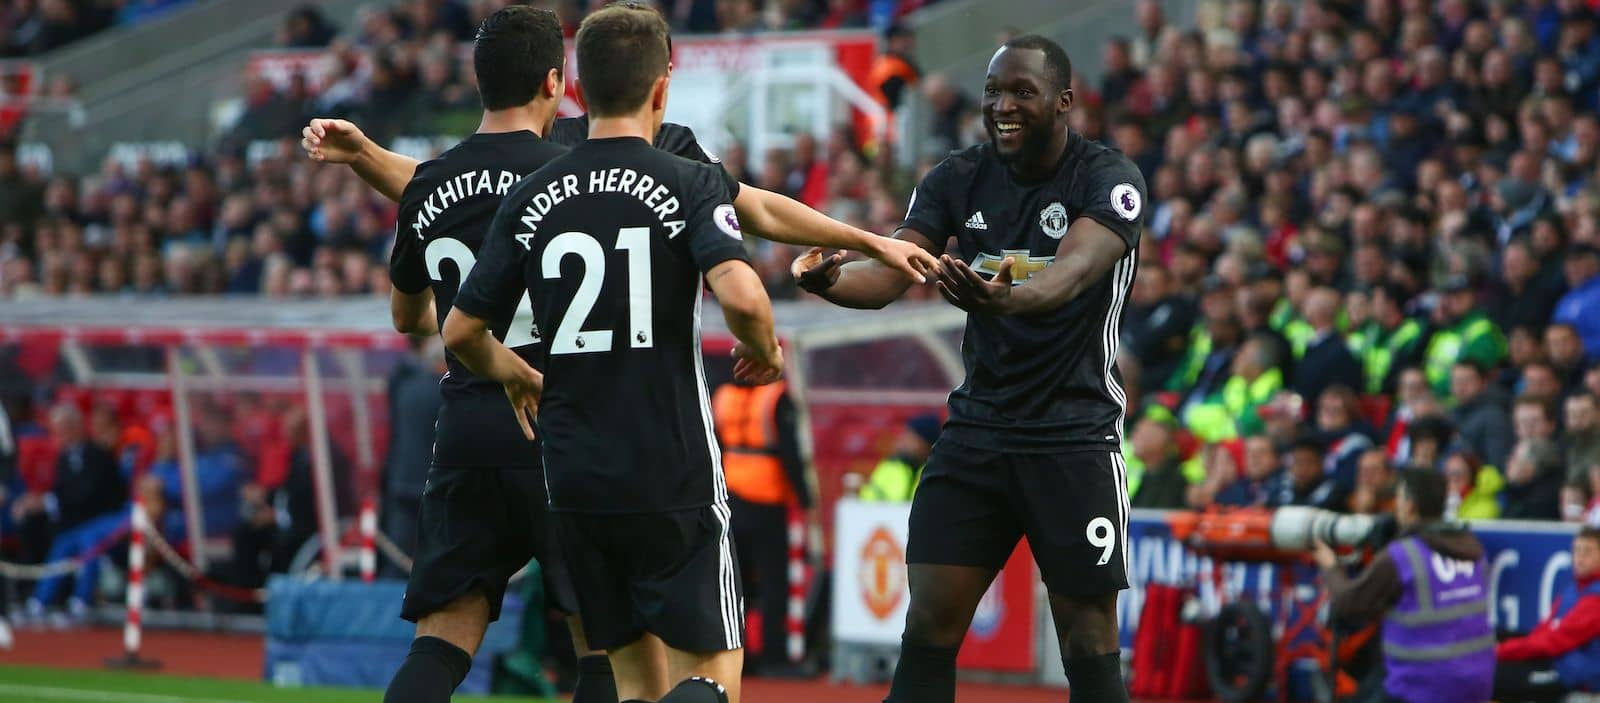 Romelu Lukaku nominated for Barclays Premier League 'Player of the Month' for September